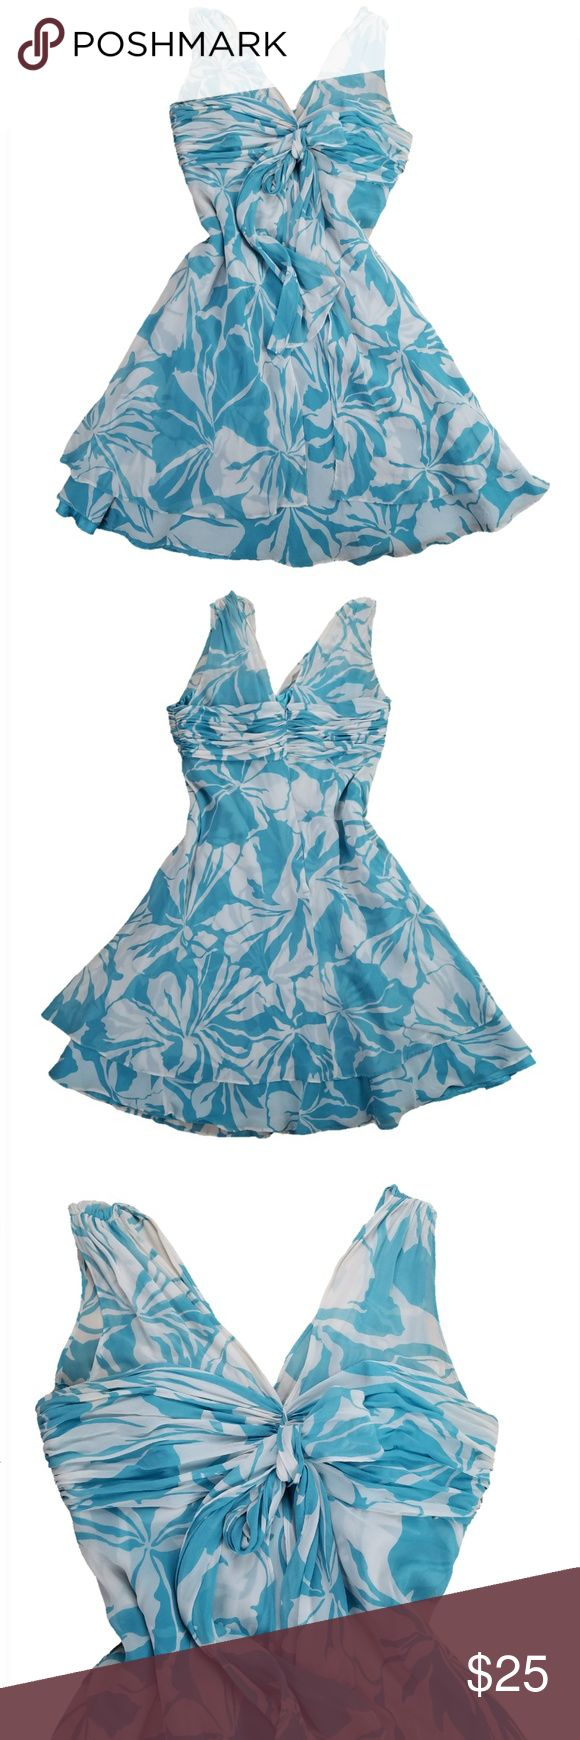 """DONNA RICCO Tropical Floral Silk Knee Length Dress Size: 12  Color/Pattern: Teal/Turquoise & White; Tropical Floral Design: Sleeveless, V-neck, Empire Waist, Circle Materials: Shell: 100% Silk; Lining: 100% Polyester  Measurements (approximate, laying flat) Shoulder (seam to seam): 16"""" Underarm to underarm: 19"""" Waist: 17"""" Length: 40"""" Width at Hem: 38""""  Condition: Gently pre-owned with no tears, holes, or stains.  PLEASE CHECK MEASUREMENTS TO ENSURE PROPER FIT!  I am a smoke-free, Dog…"""